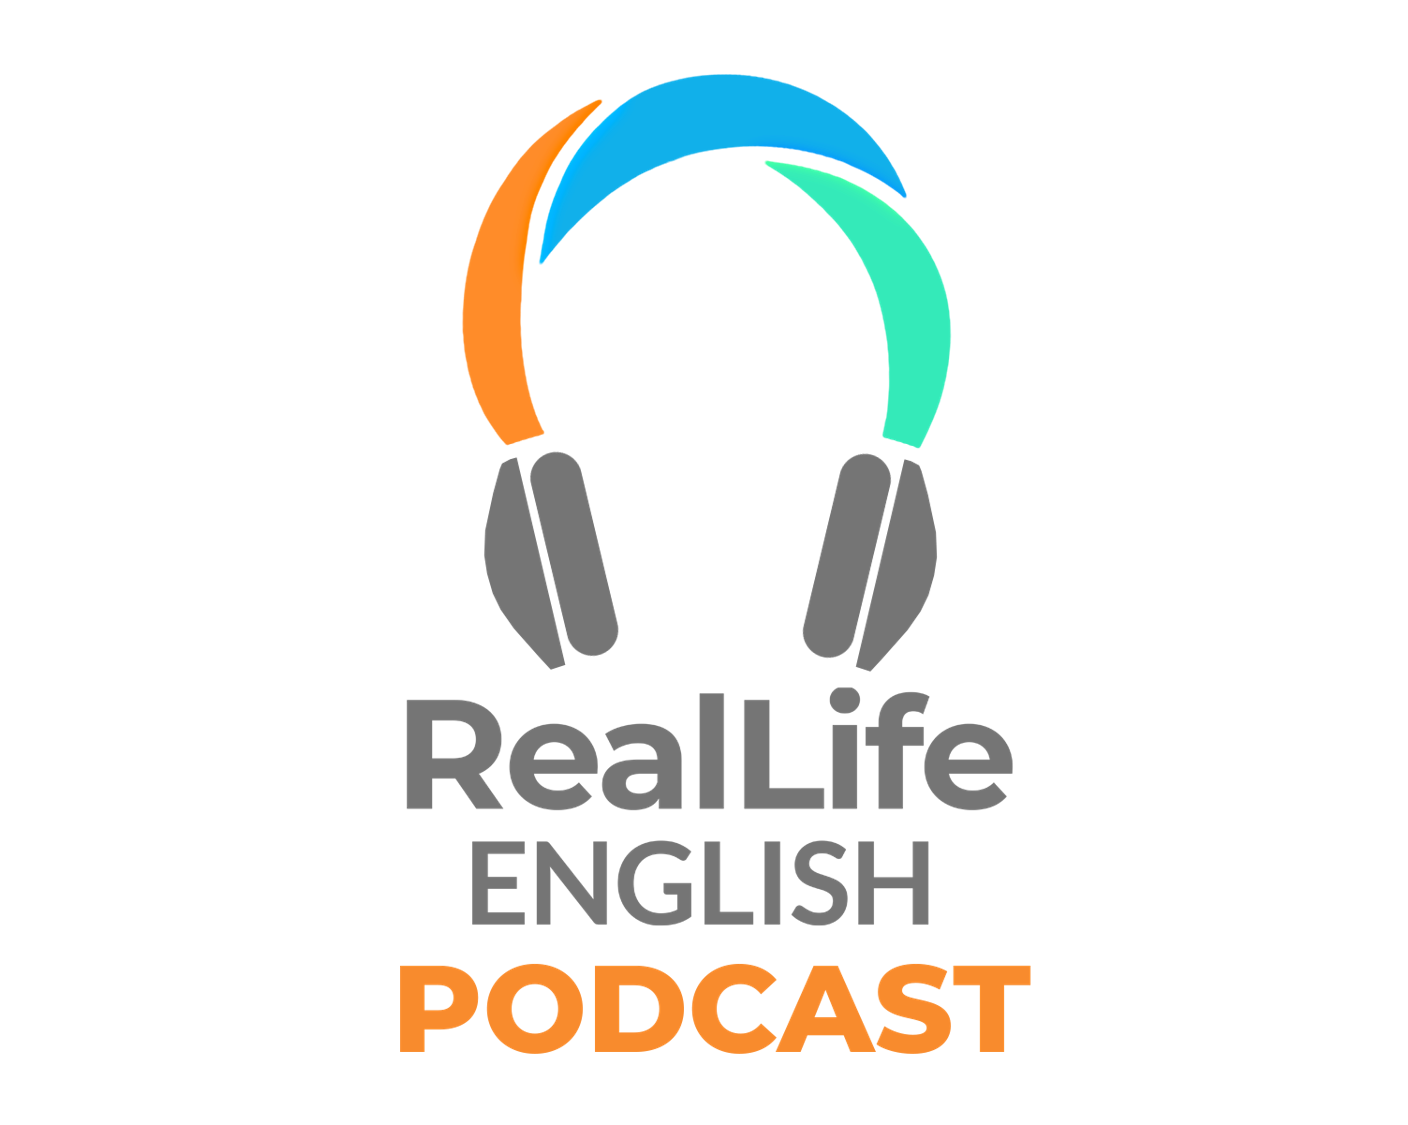 #236 - 10 Free Online Games To Practice Your English!